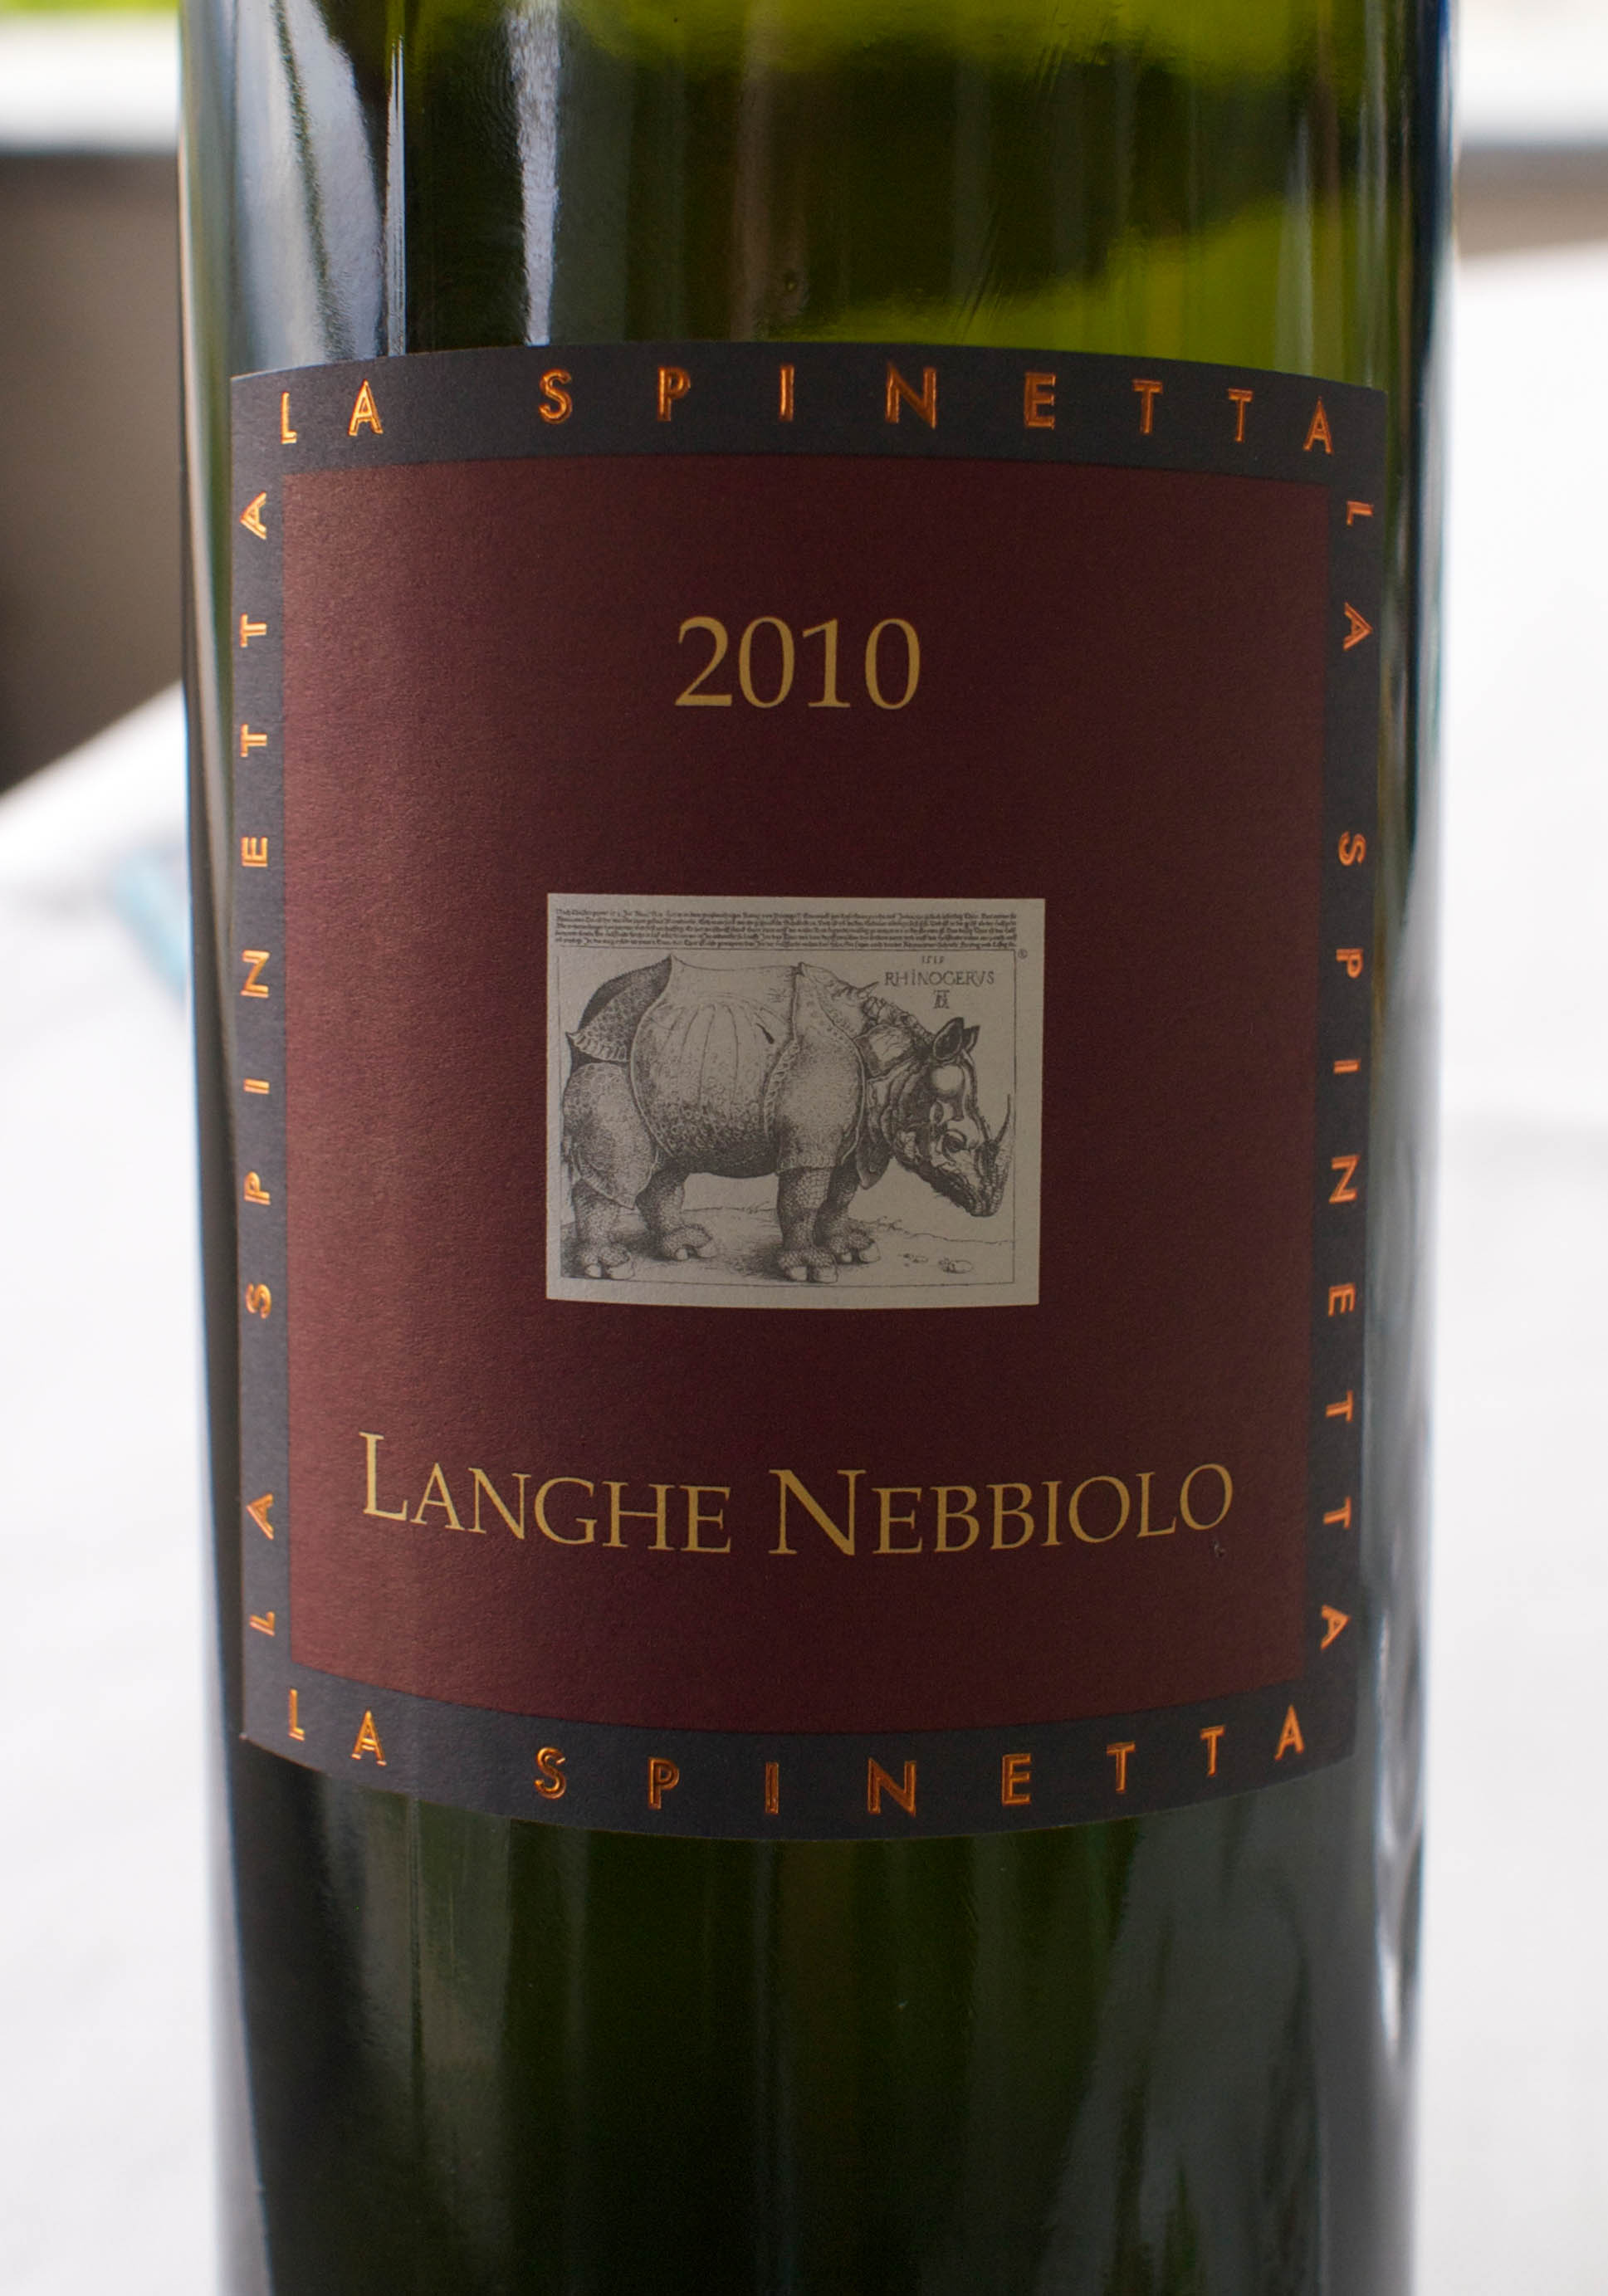 La Spinetta Langhe Nebbiolo (perhaps the best wine we shared in Piedmont